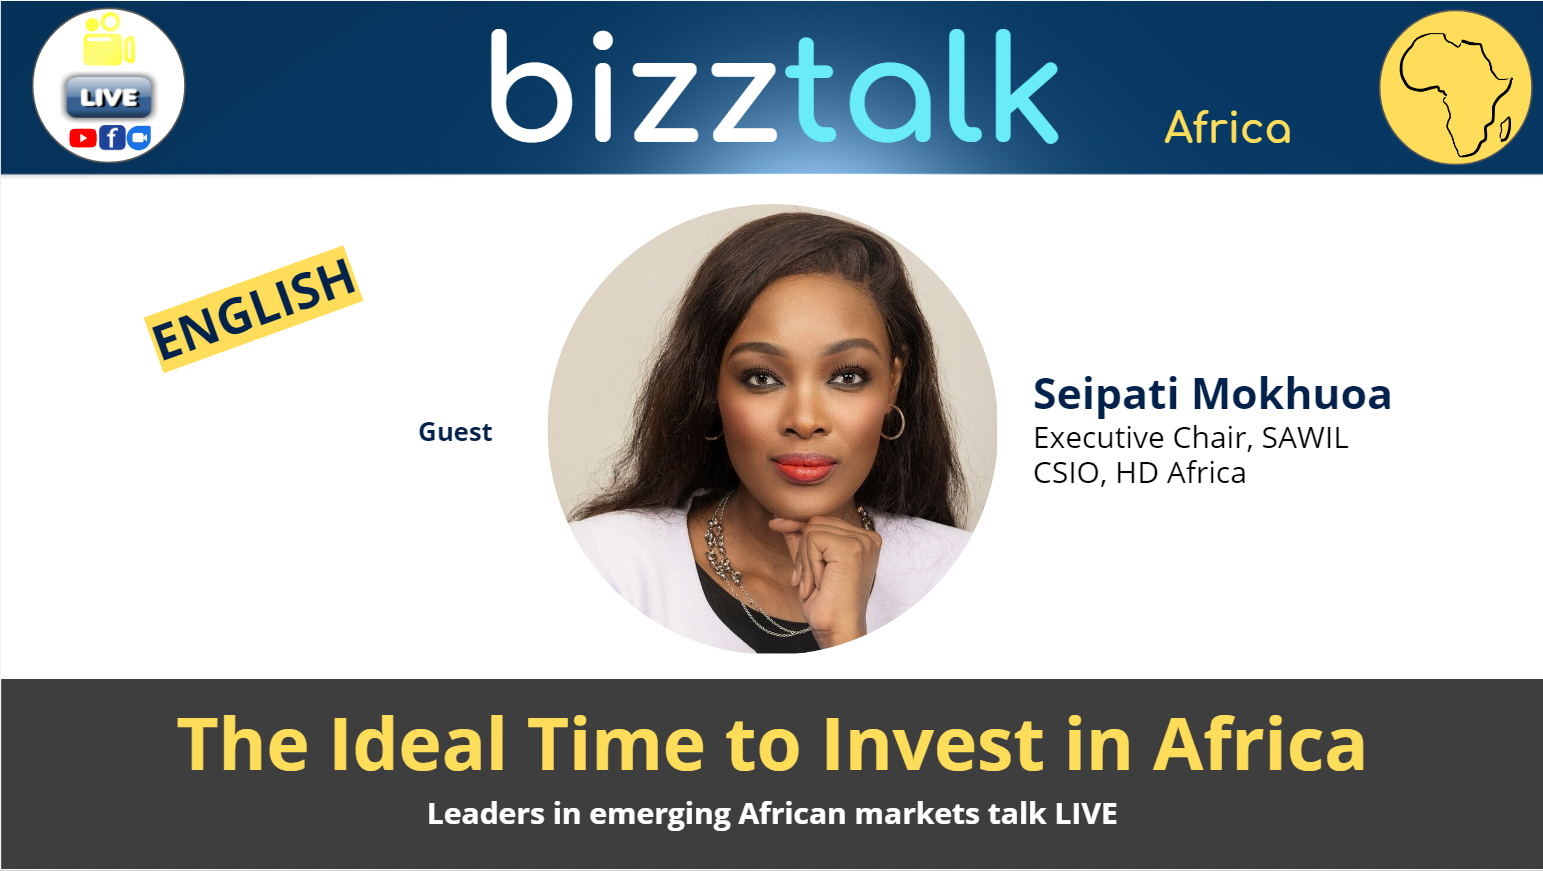 The Ideal Time to Invest in Africa